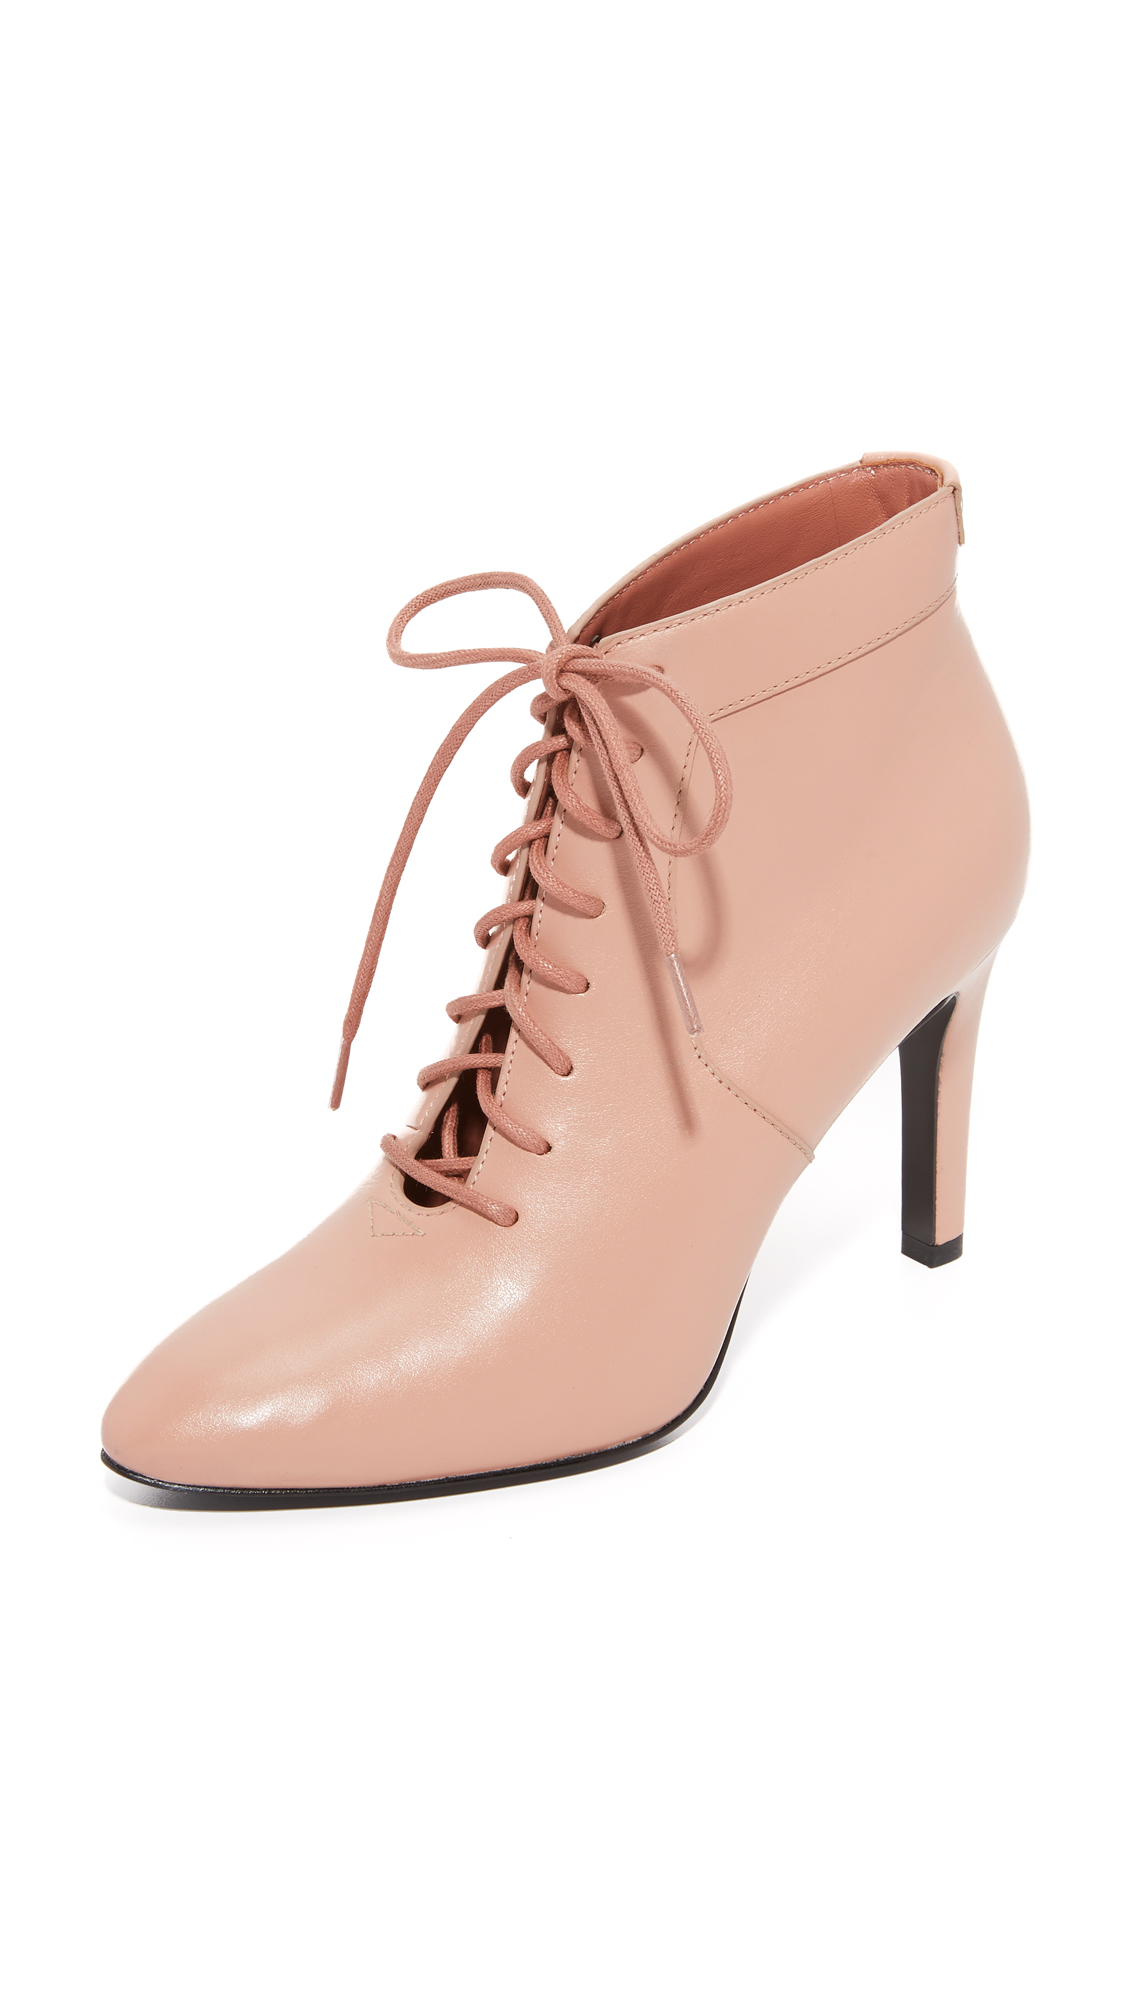 Opening Ceremony Mirzam Lace Up Booties - Desert